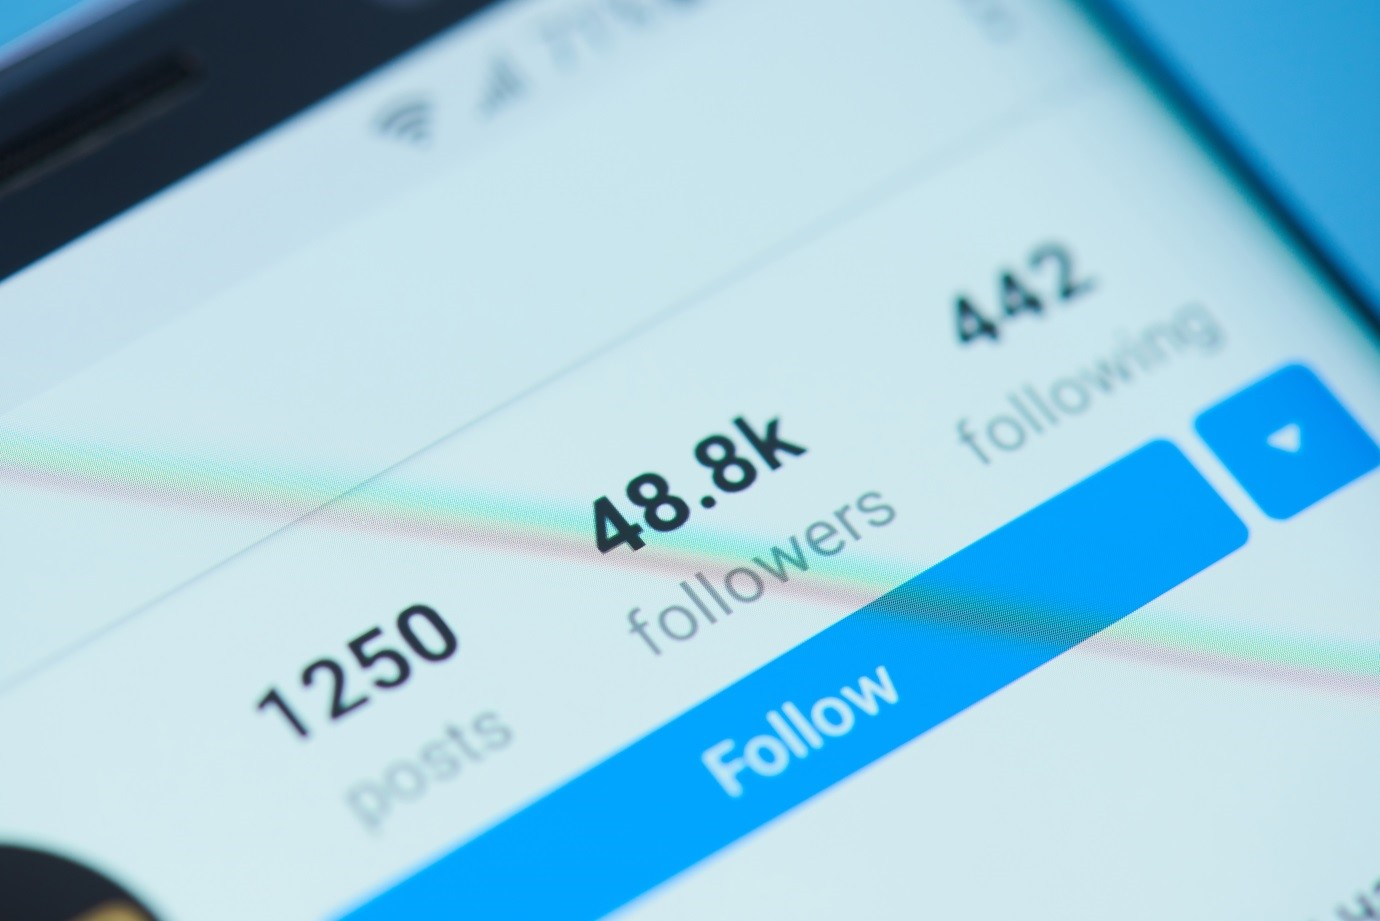 Survey reveals 98% of content creators admitted to having spotted follower fraud among online influencers